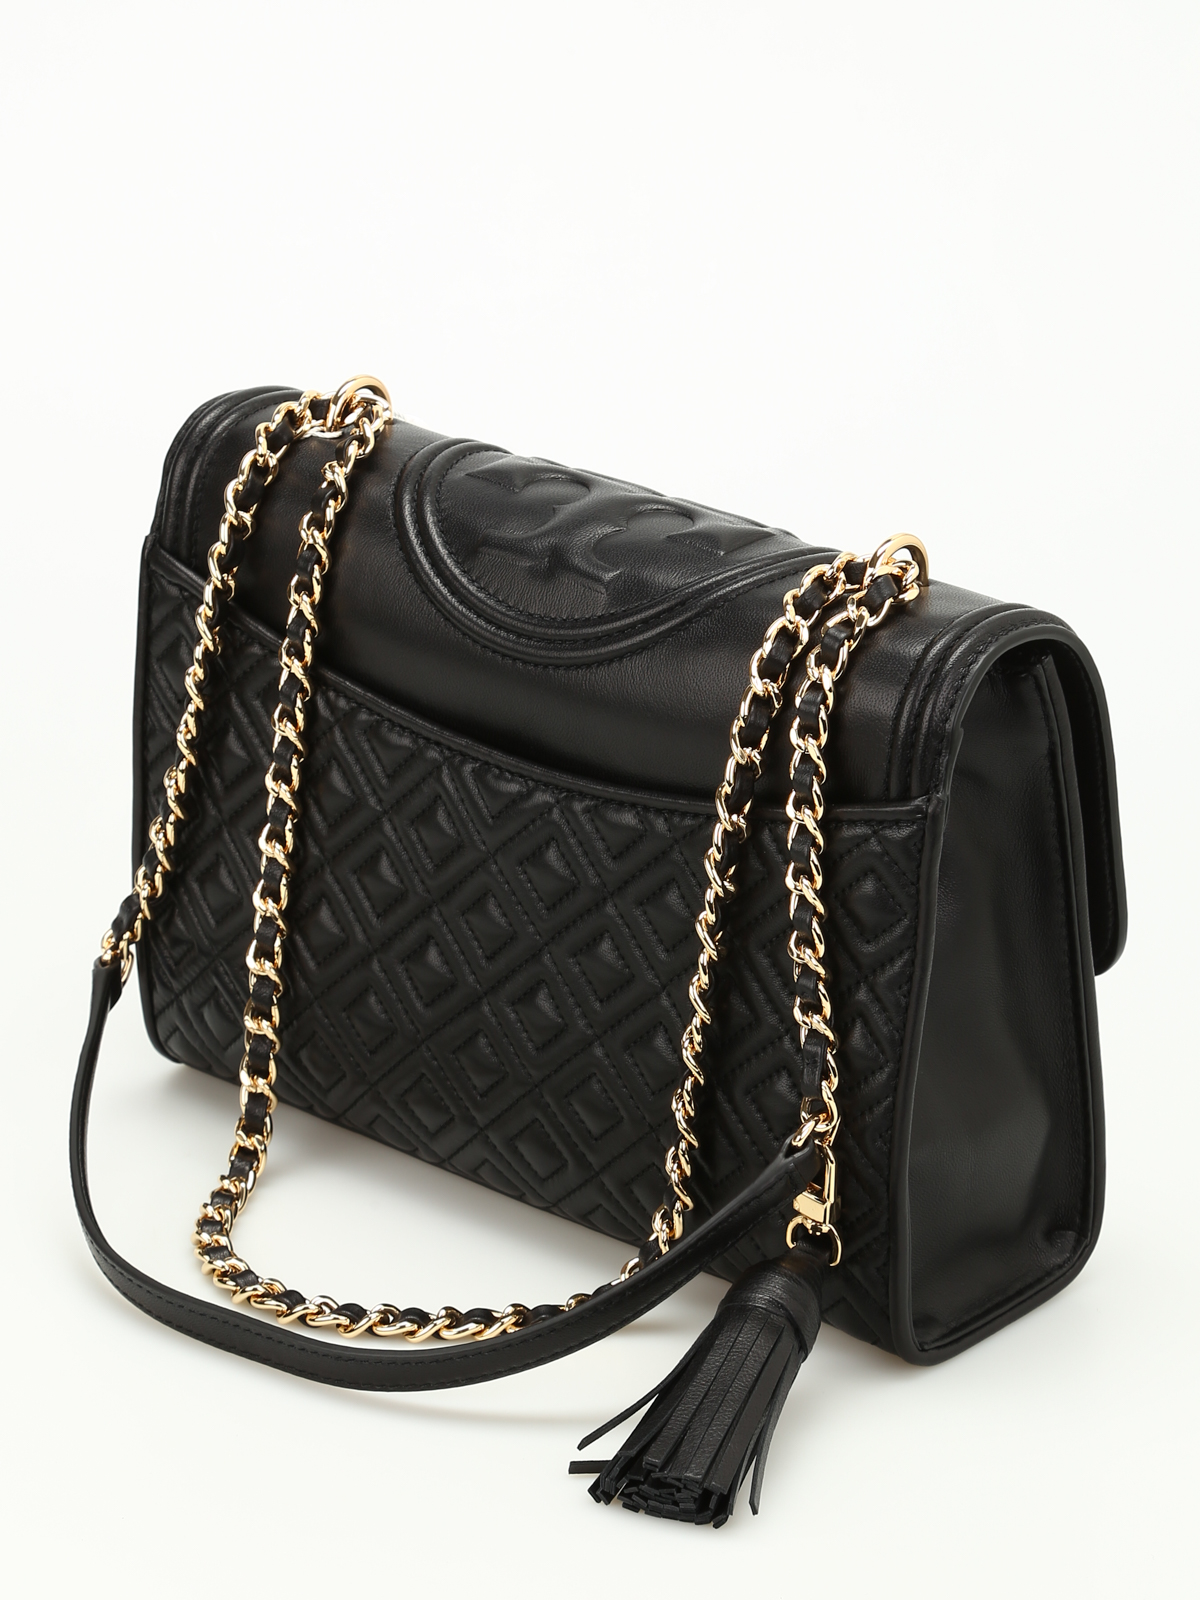 56e44ba8fc9 Tory Burch - Fleming quilted leather bag - shoulder bags - 31381001